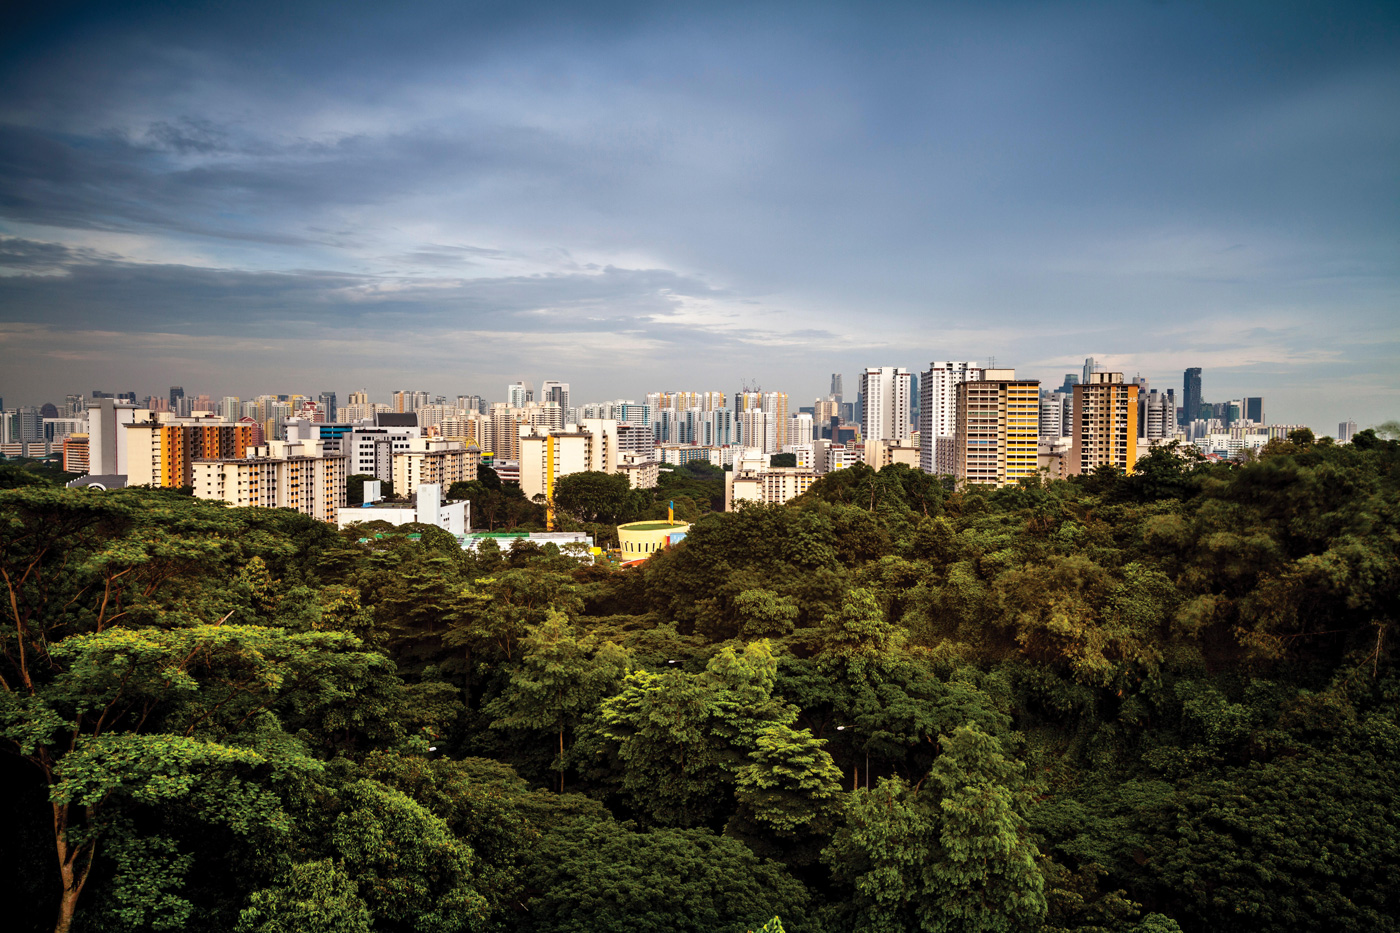 Photo of Singapore with a forest and buildings